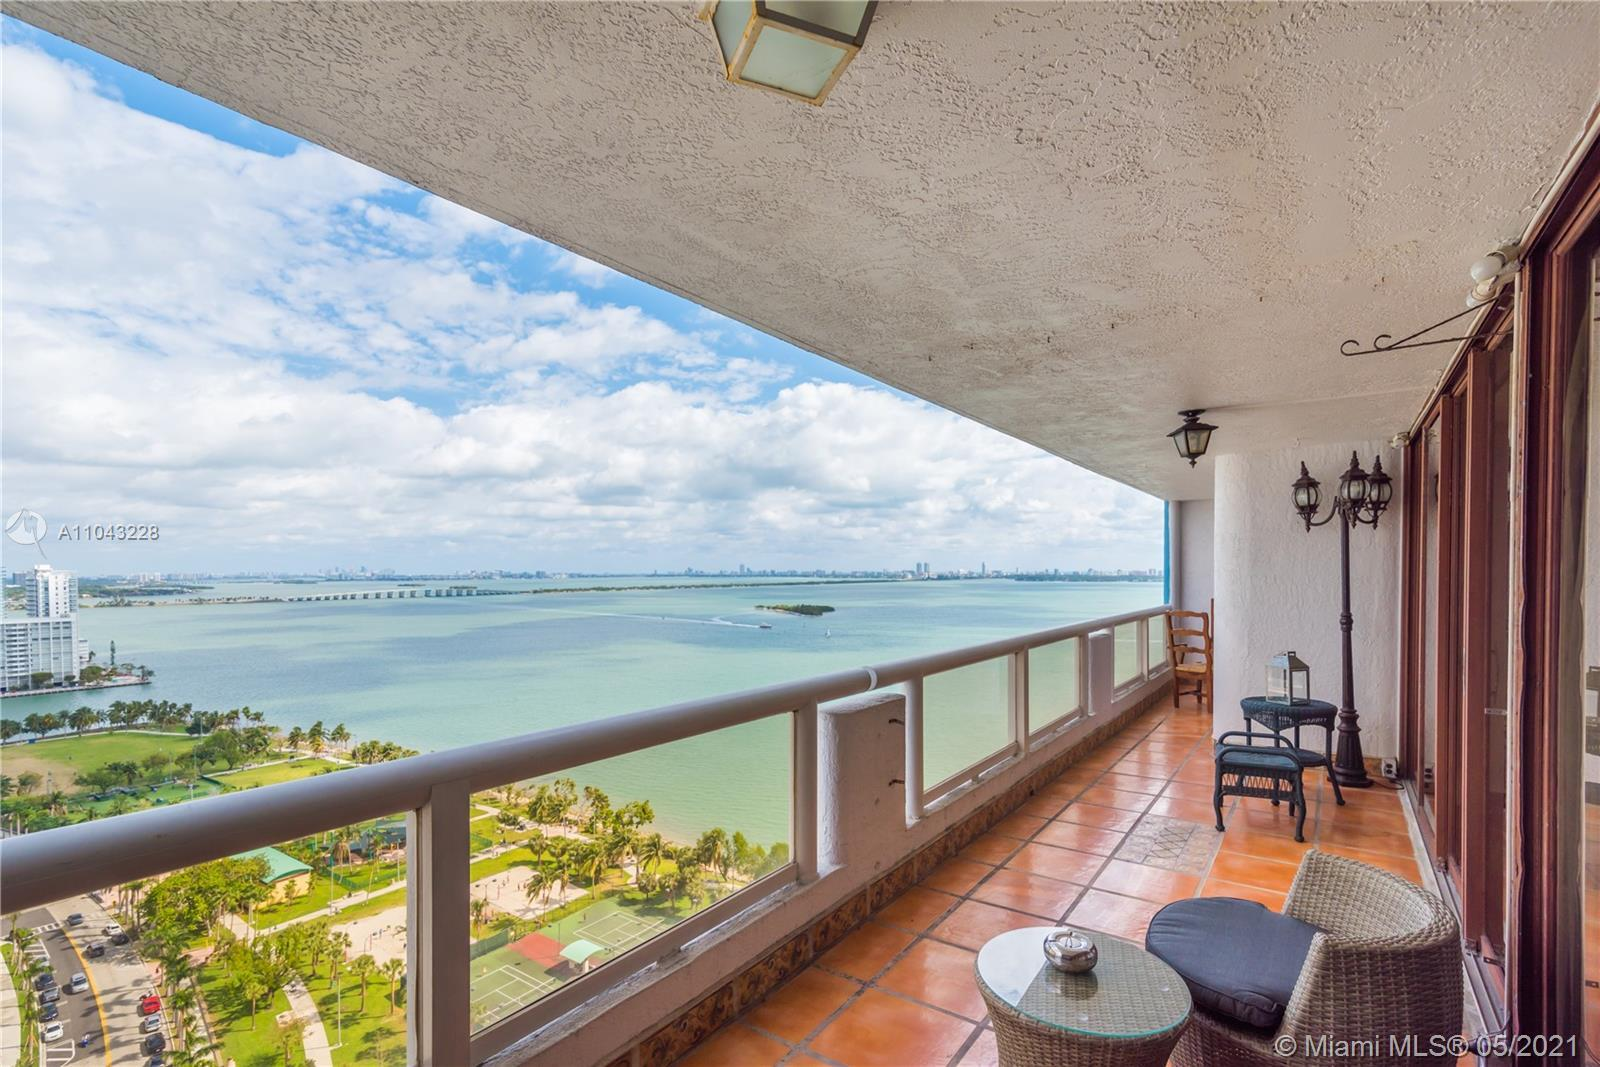 *** Best Deal in the Building! *** Beautiful WATER VIEWS of Biscayne Bay and the SPECTACULAR MIAMI S